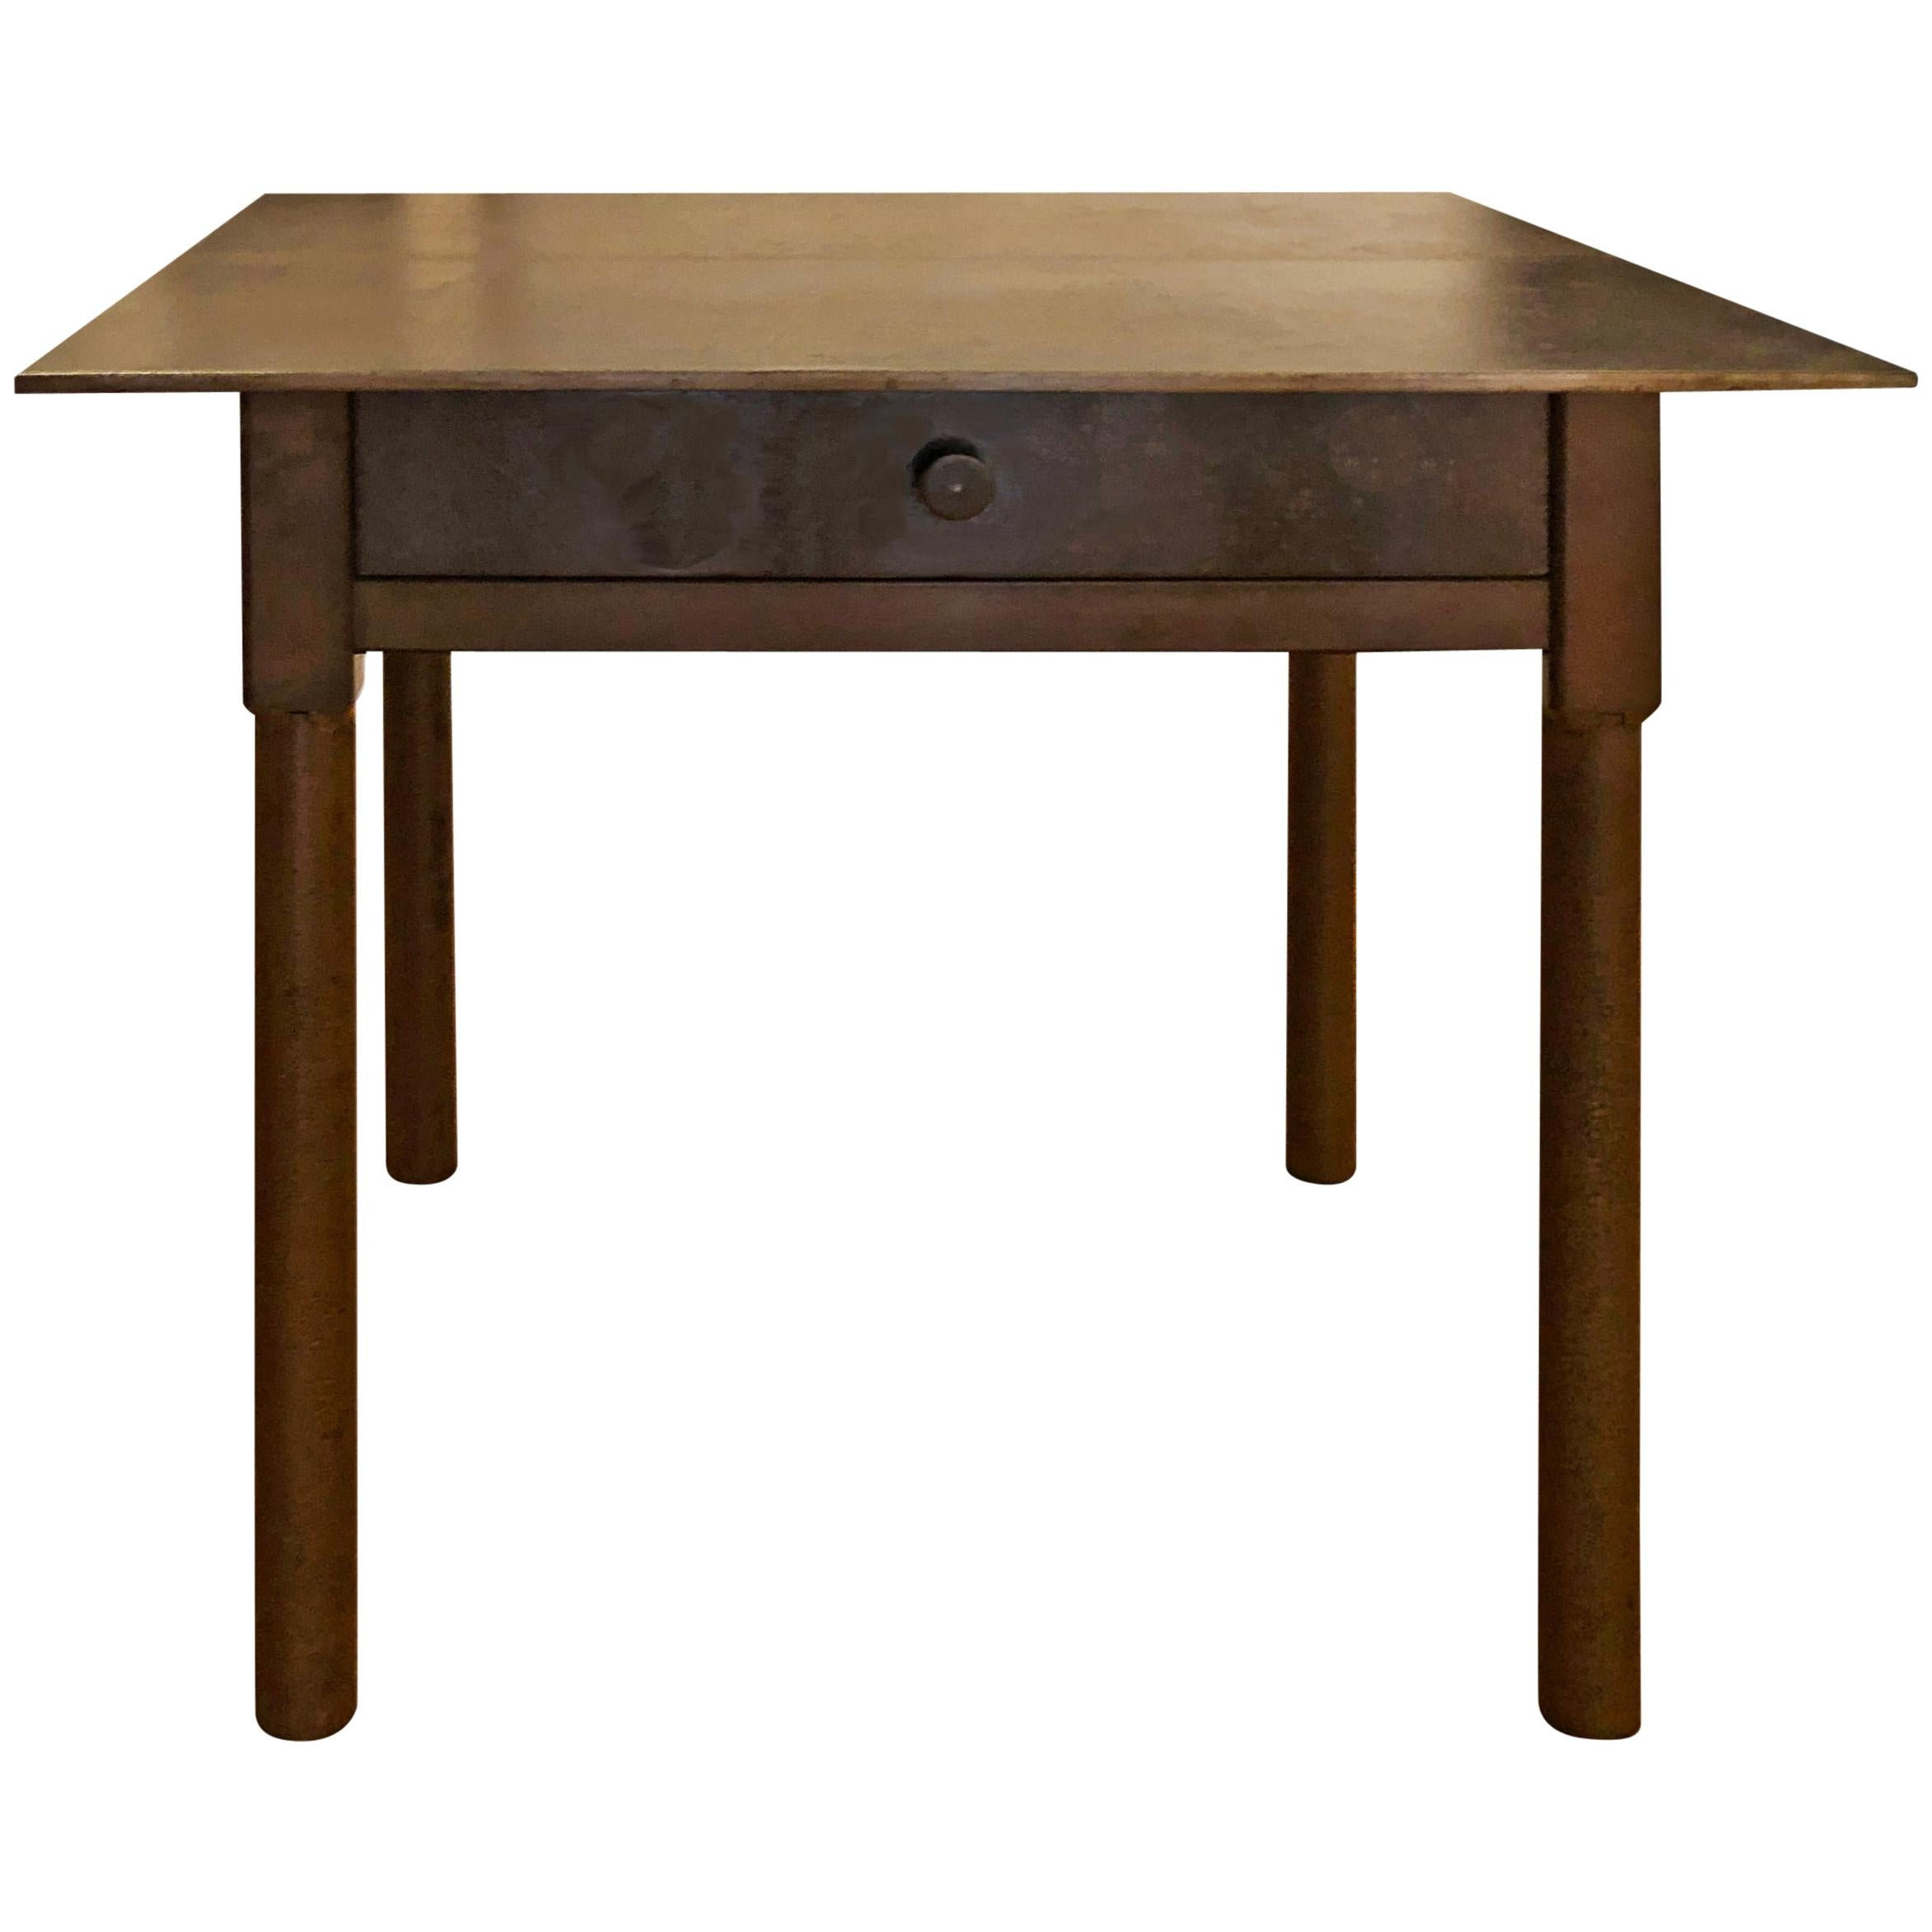 Jim Rose Legacy Collection - One-Drawer Plank Top Side Table, Steel Furniture